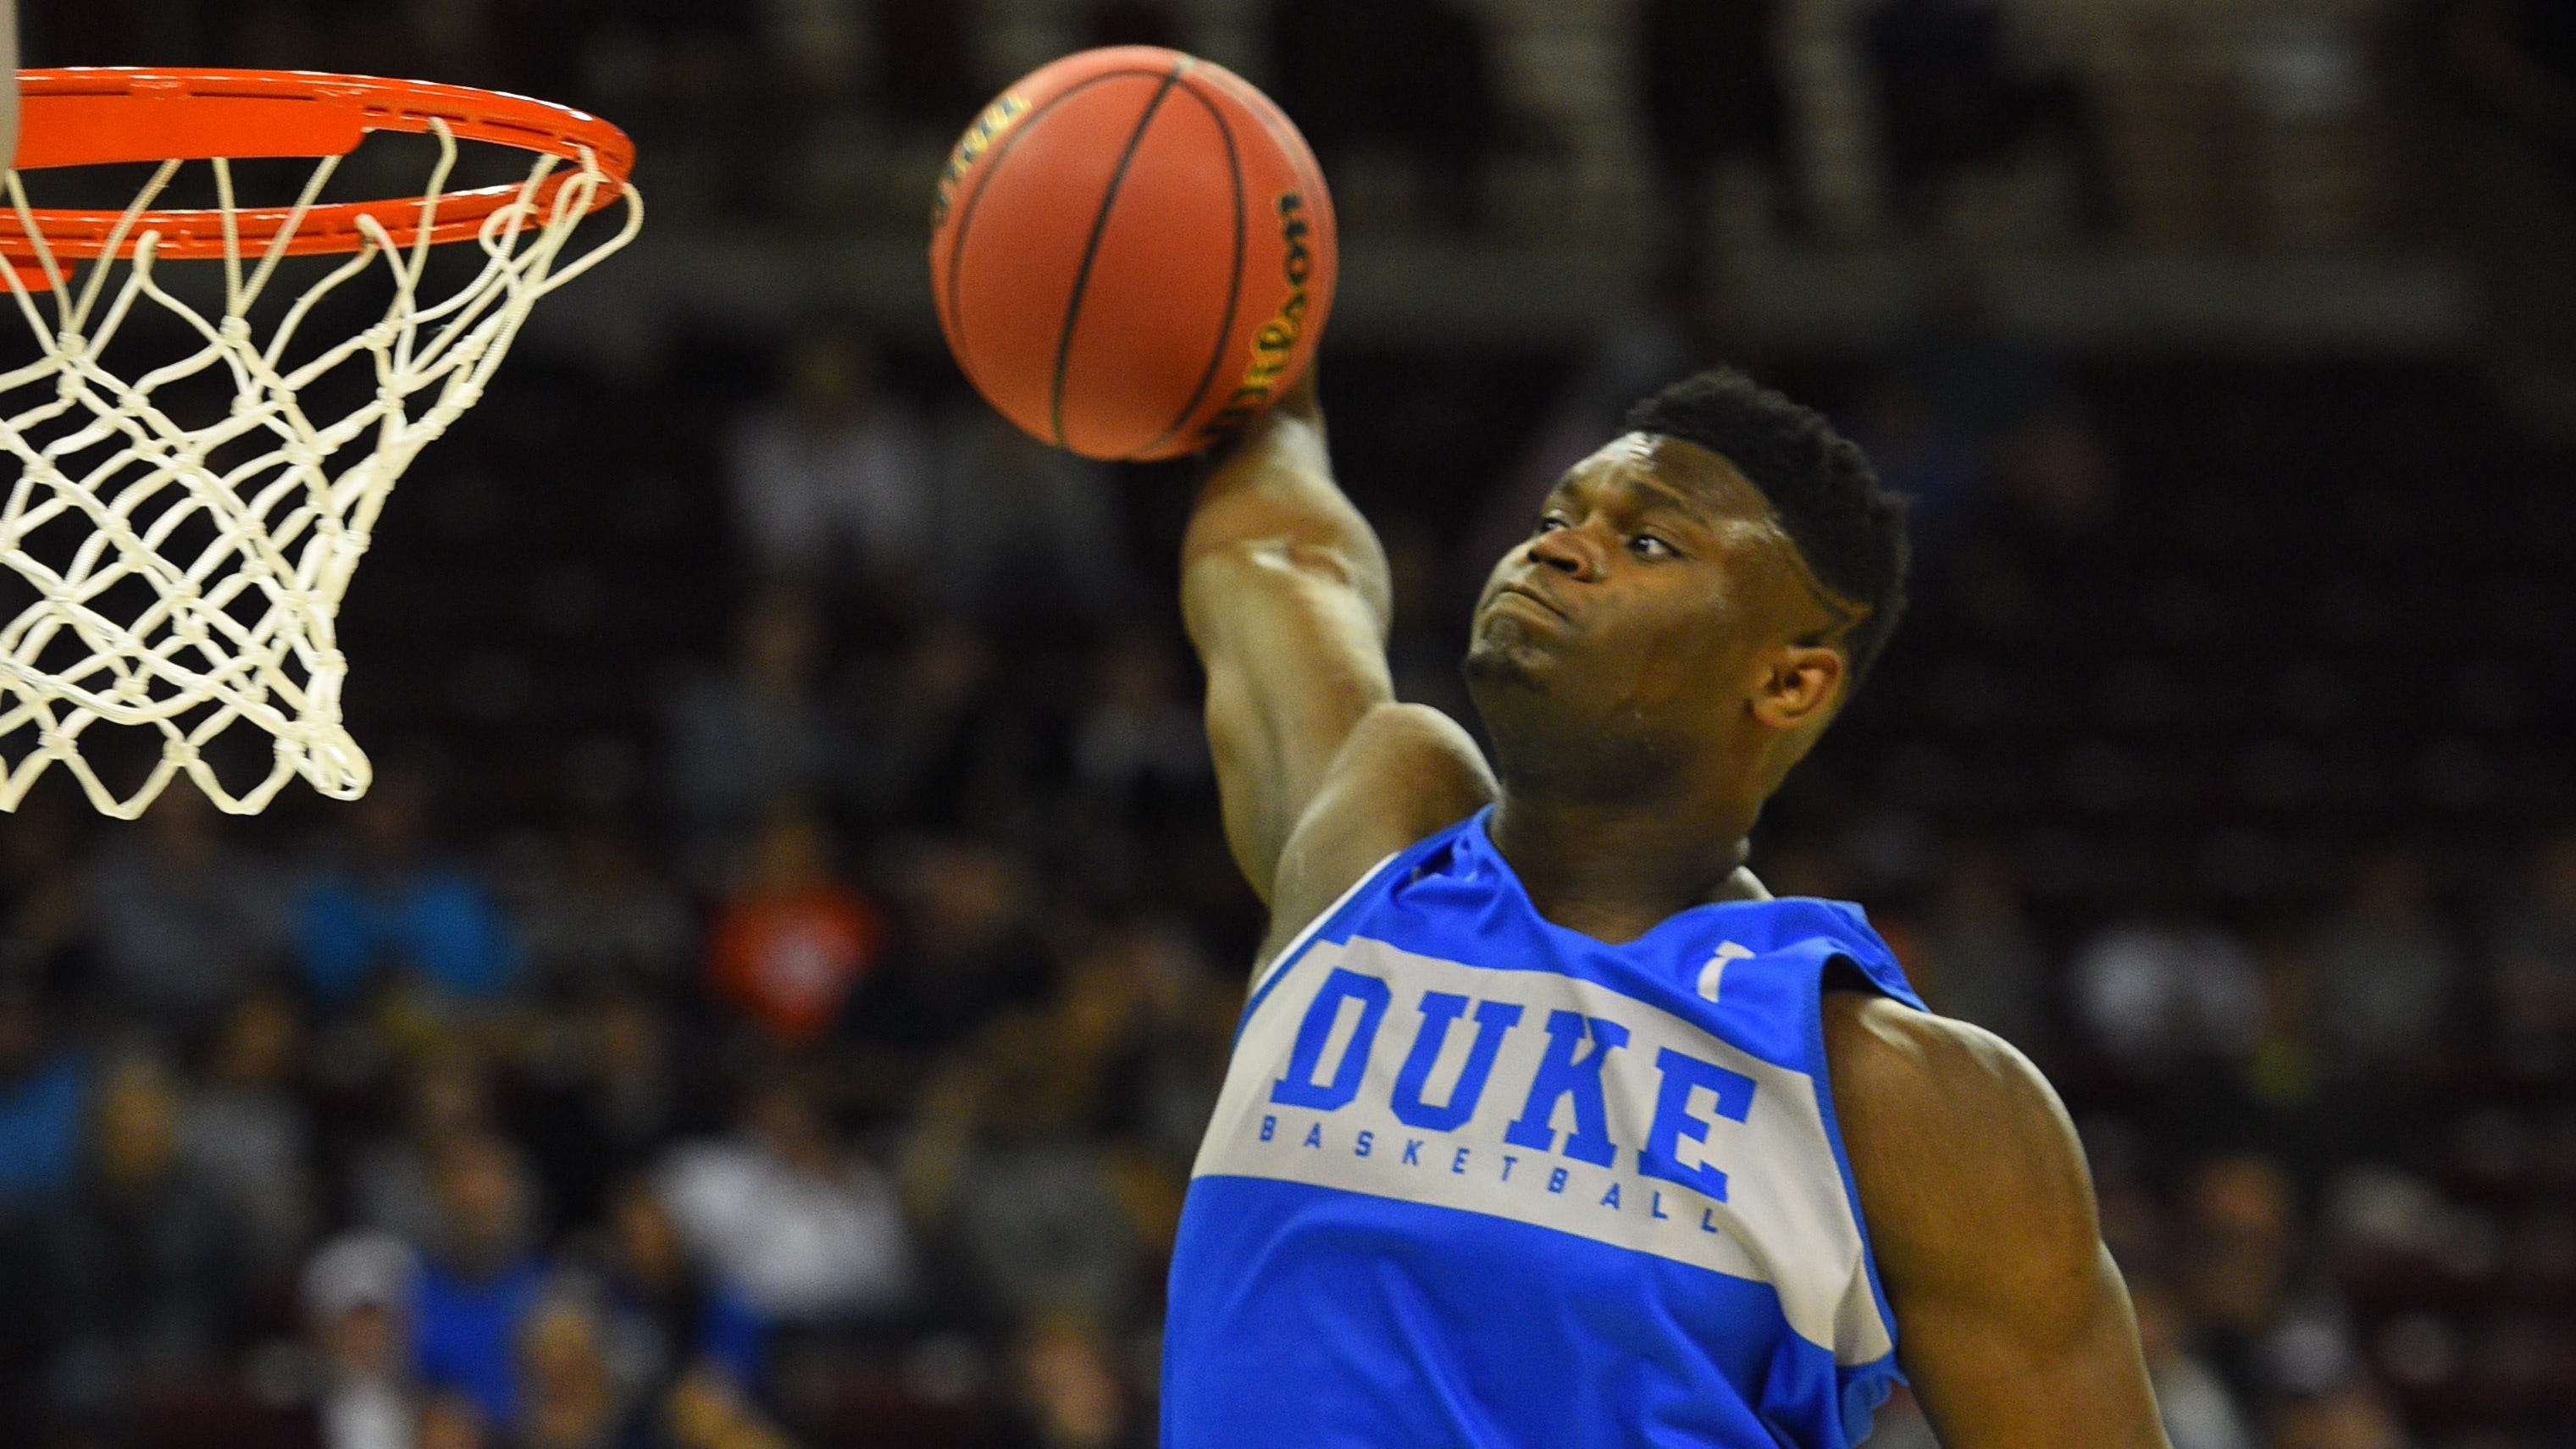 Zion Williamson will play in his first NCAA tournament game when Duke takes on North Dakota State.